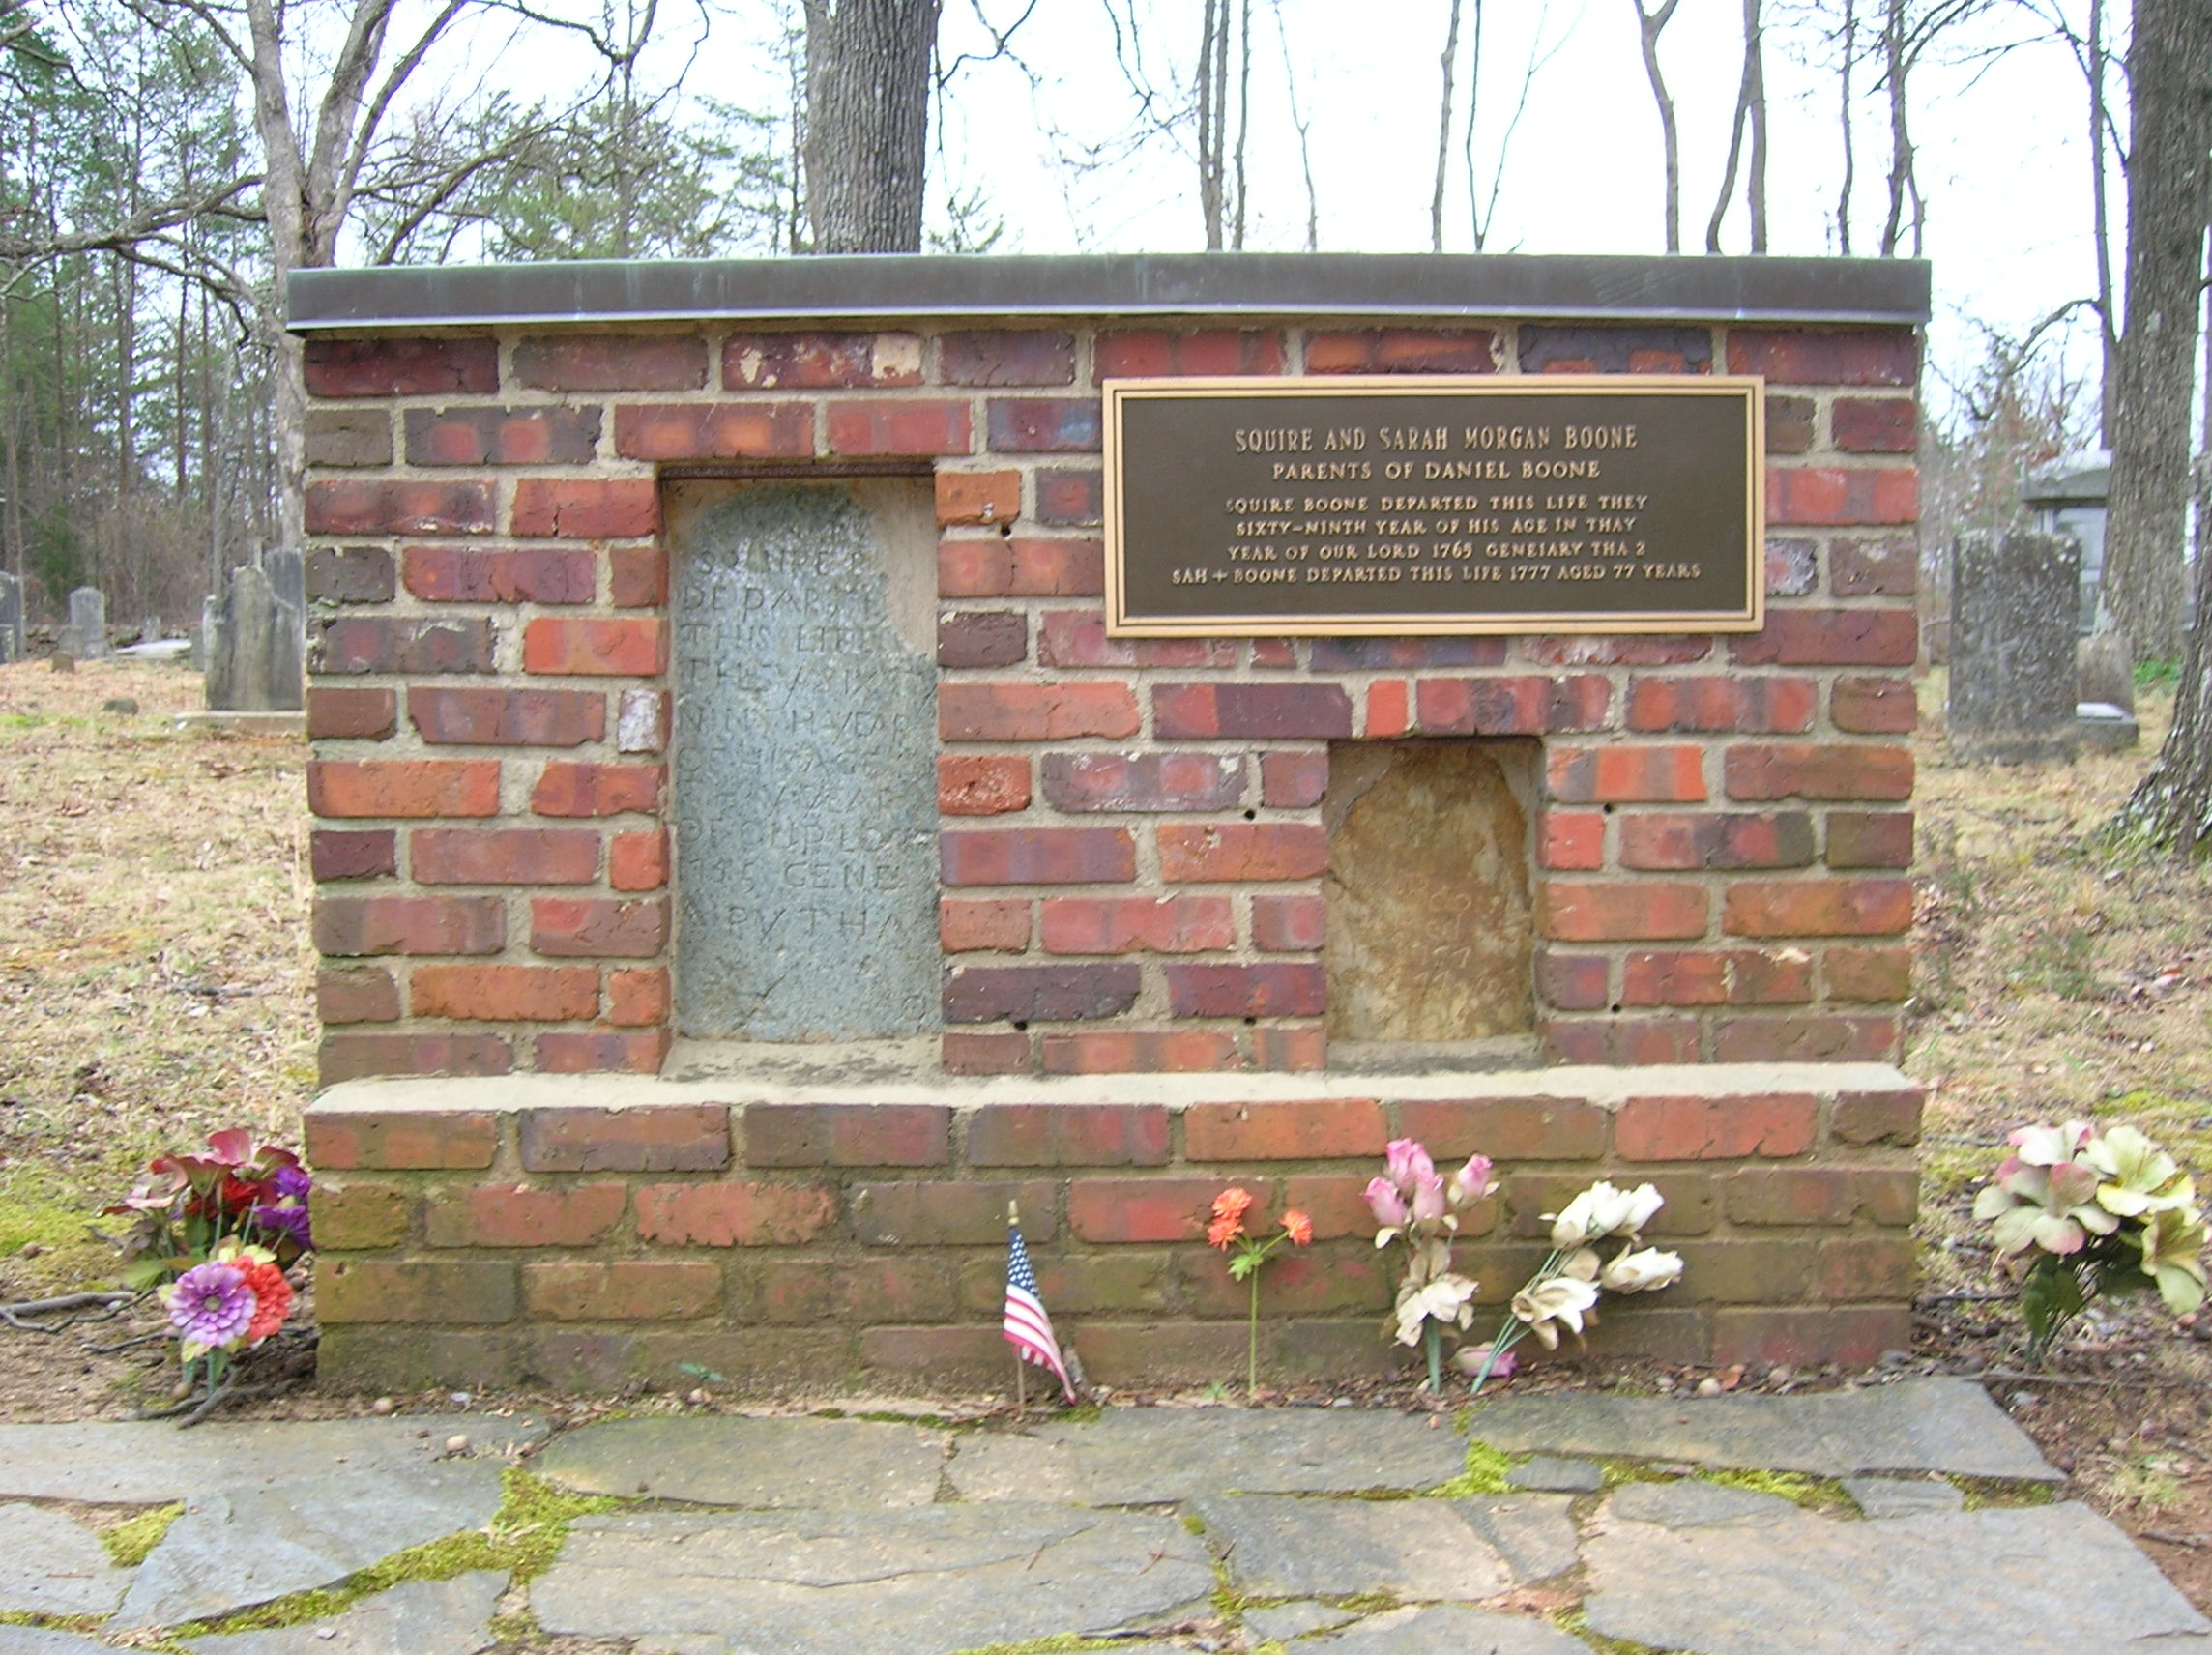 Graves of Squire and Sarah Boone